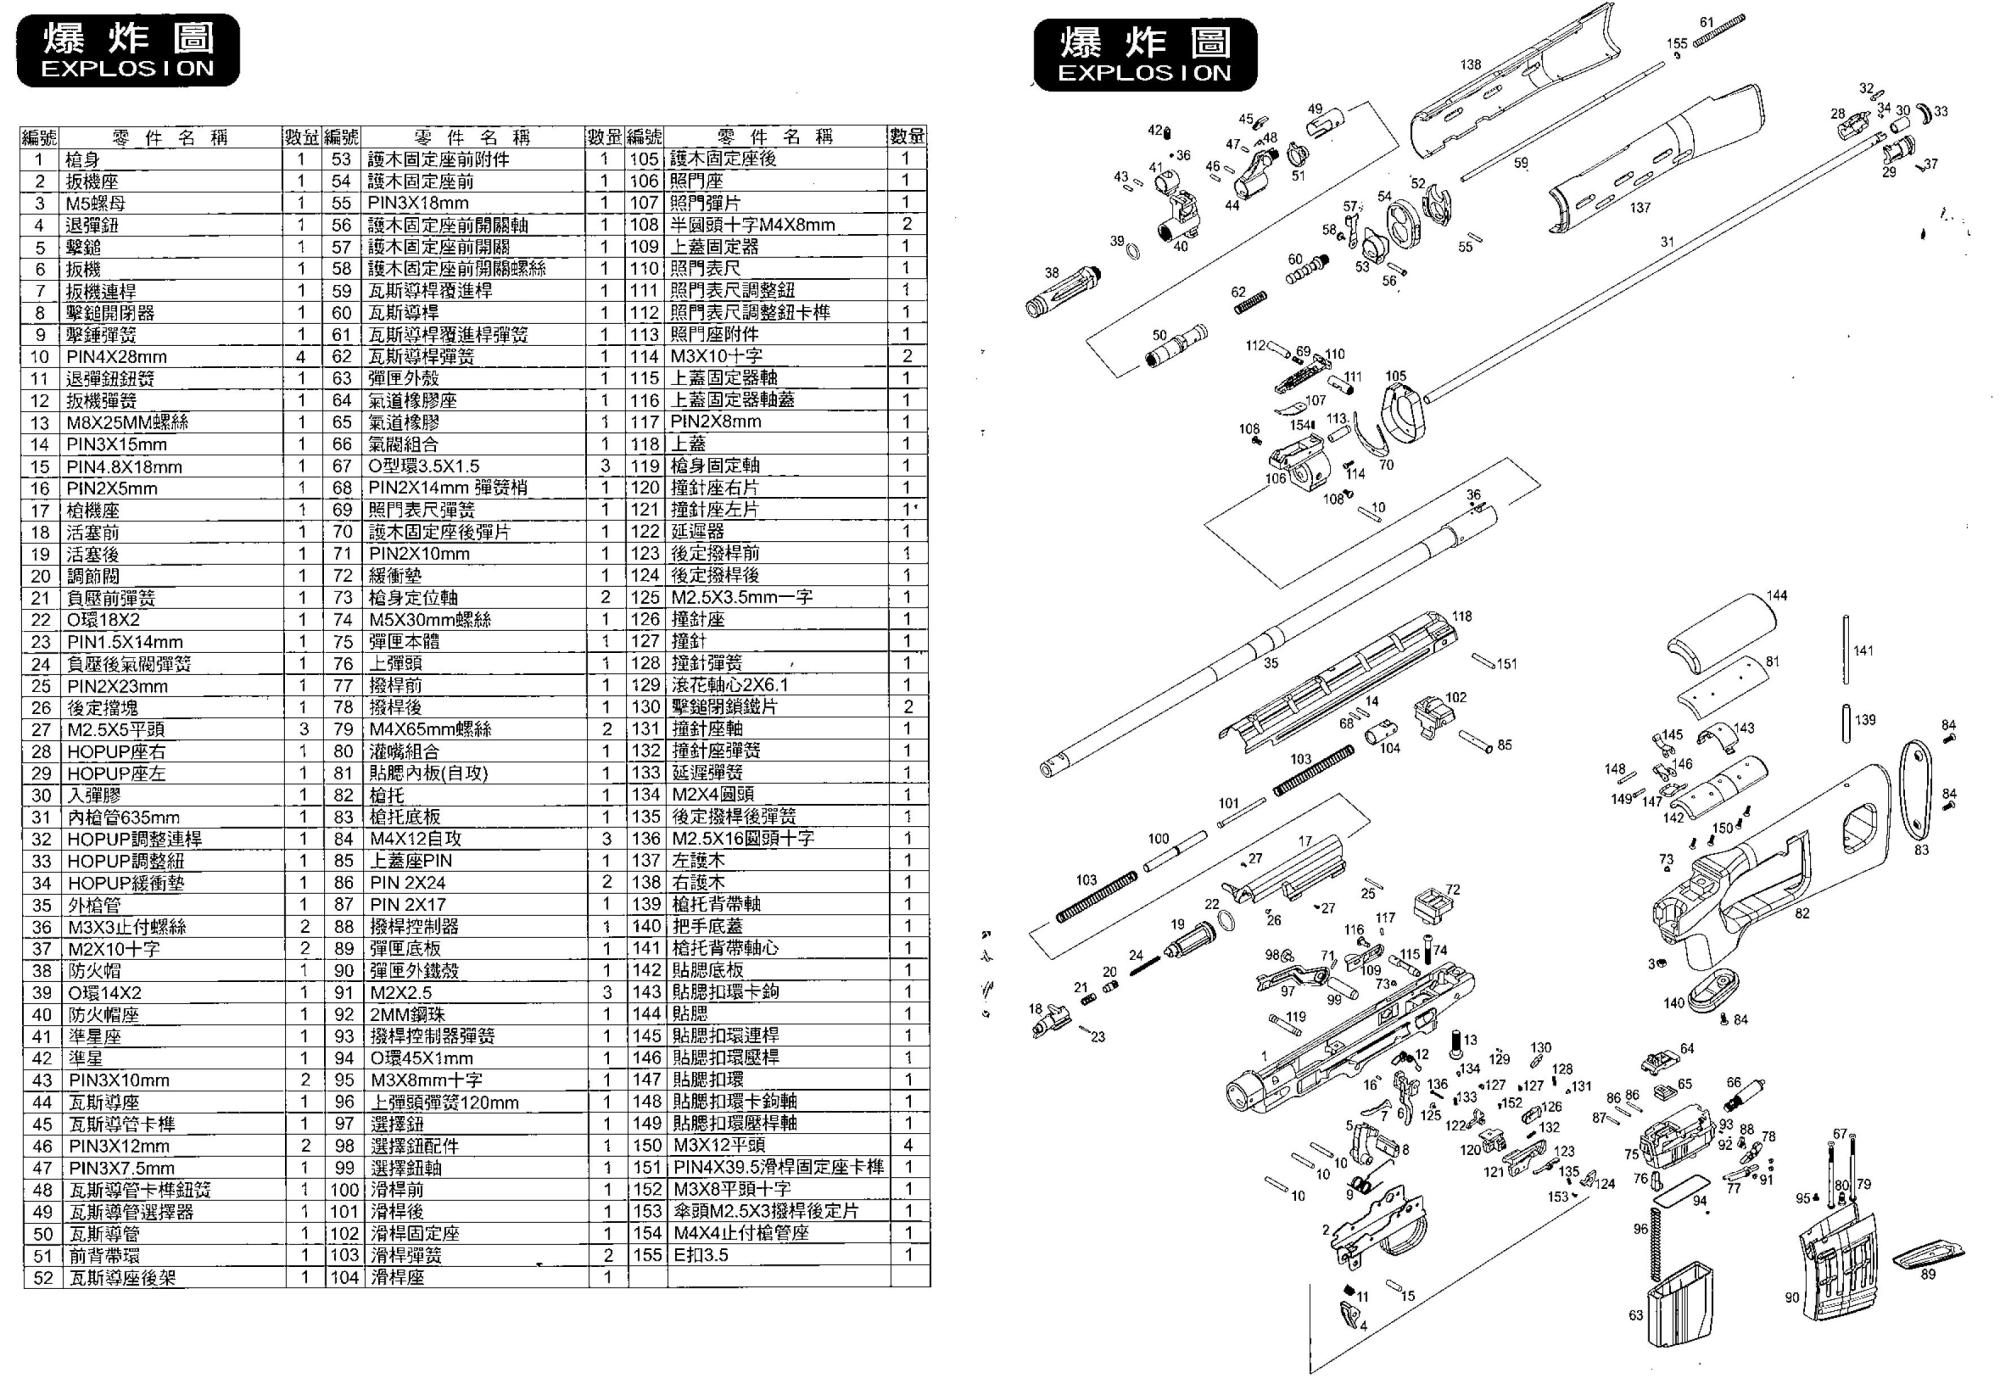 hight resolution of cyma m14 parts diagram wiring diagram yer free download manual for we gbb svd instruction user